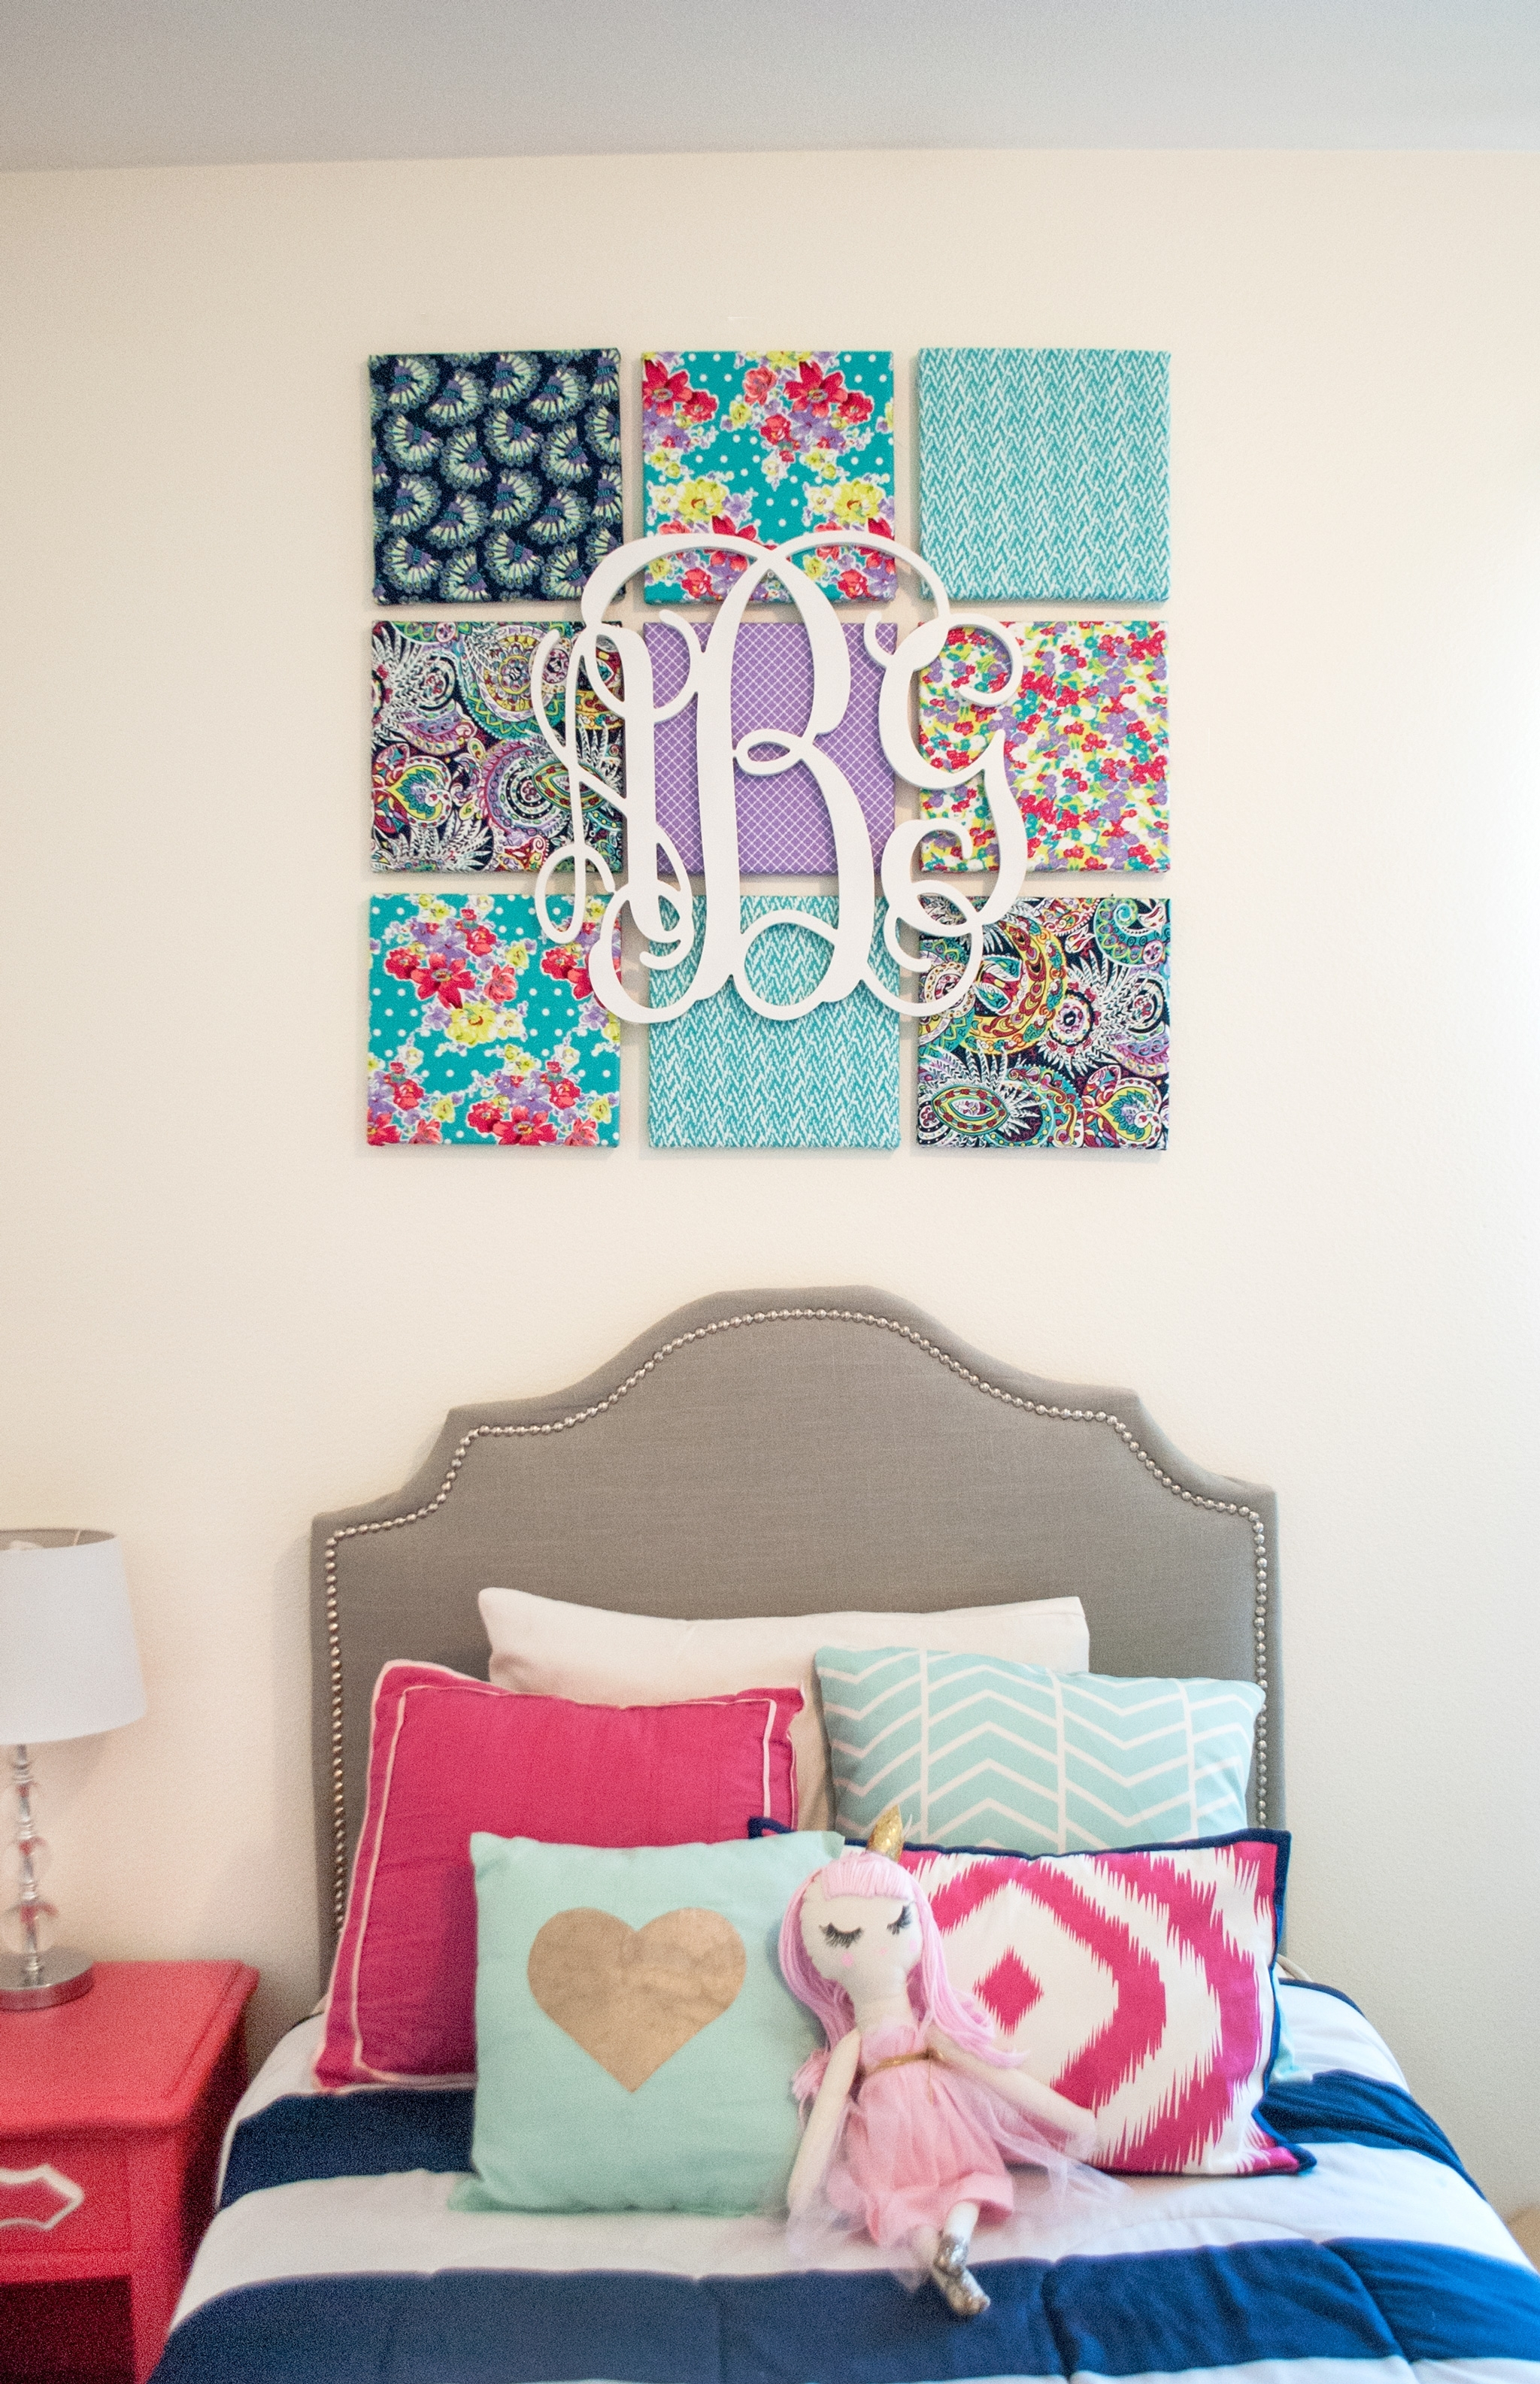 Surprising Wall Art Ideas Do It Yourself 19 Eye Catchy Diy Paper With Regard To Most Popular Diy Wall Art Projects (View 9 of 20)